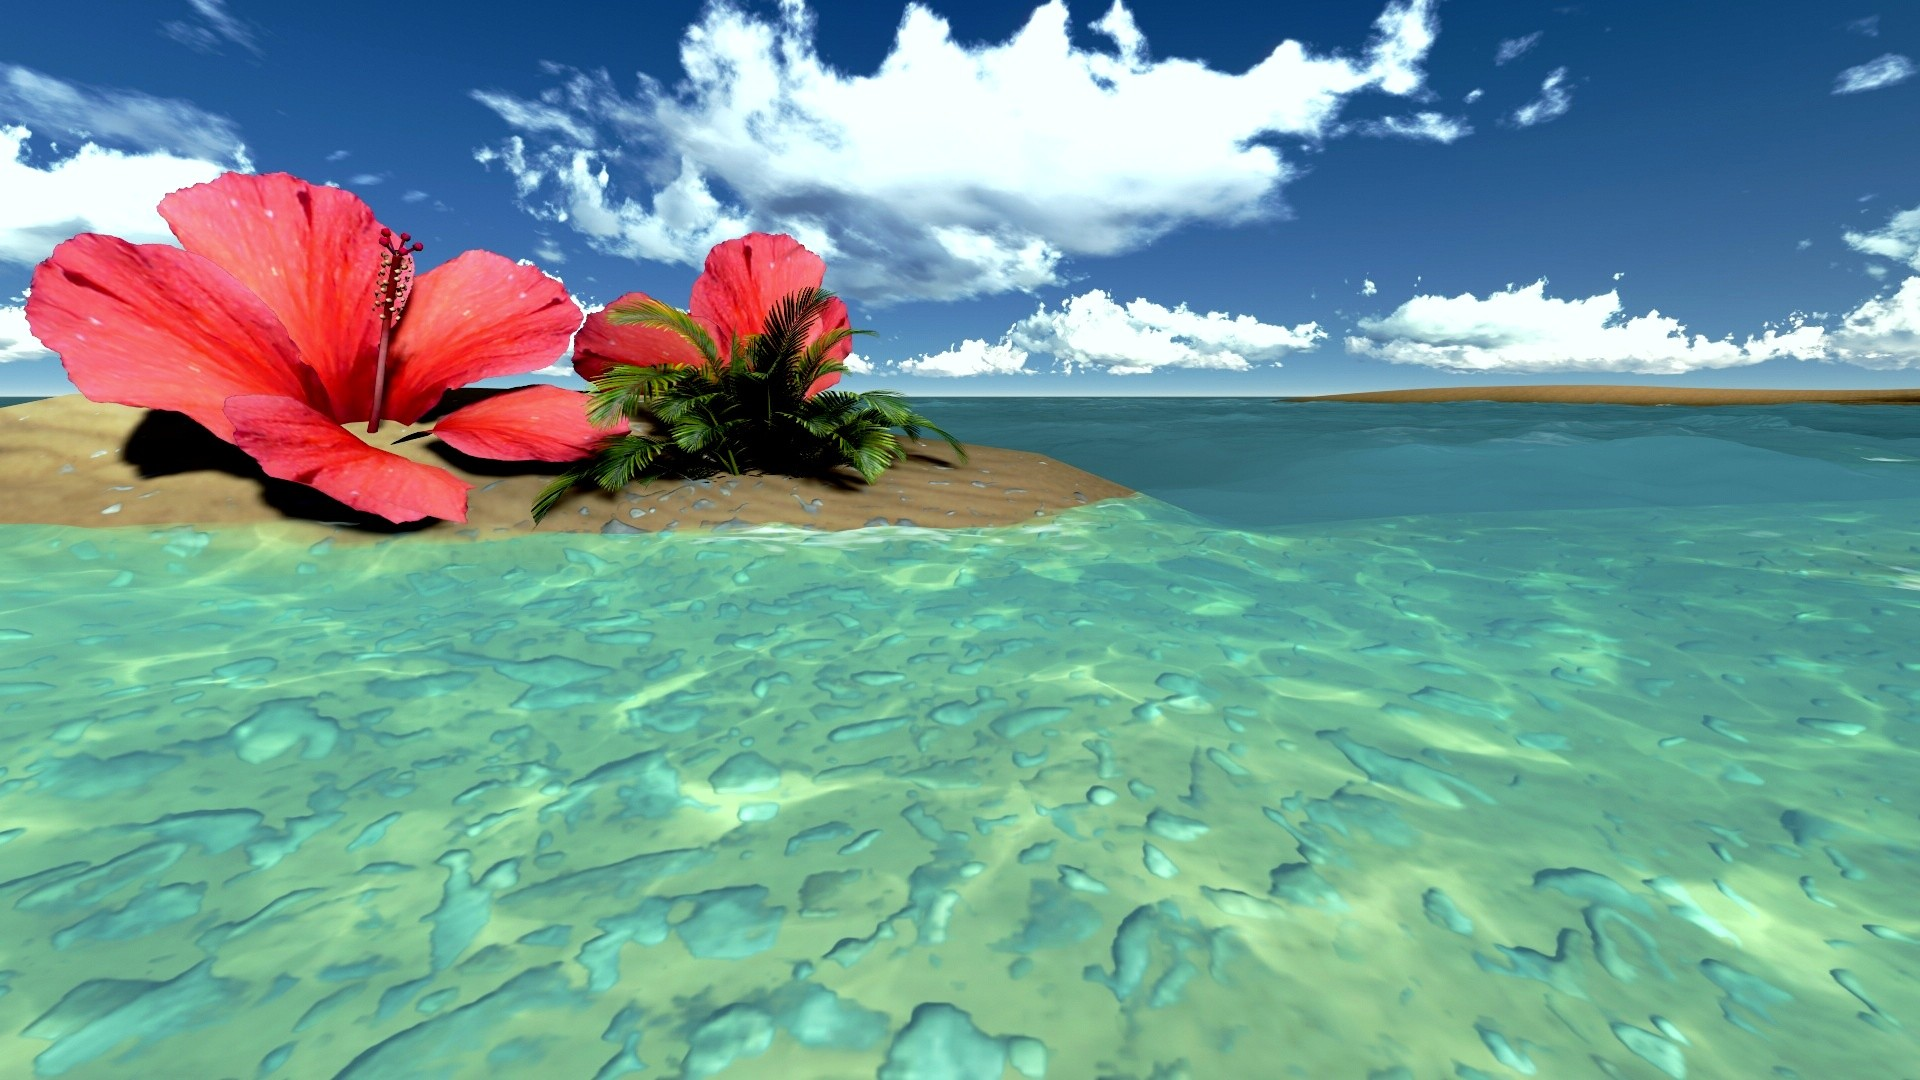 Tropical Background Wallpaper HD Free Download New HD Wallpapers .